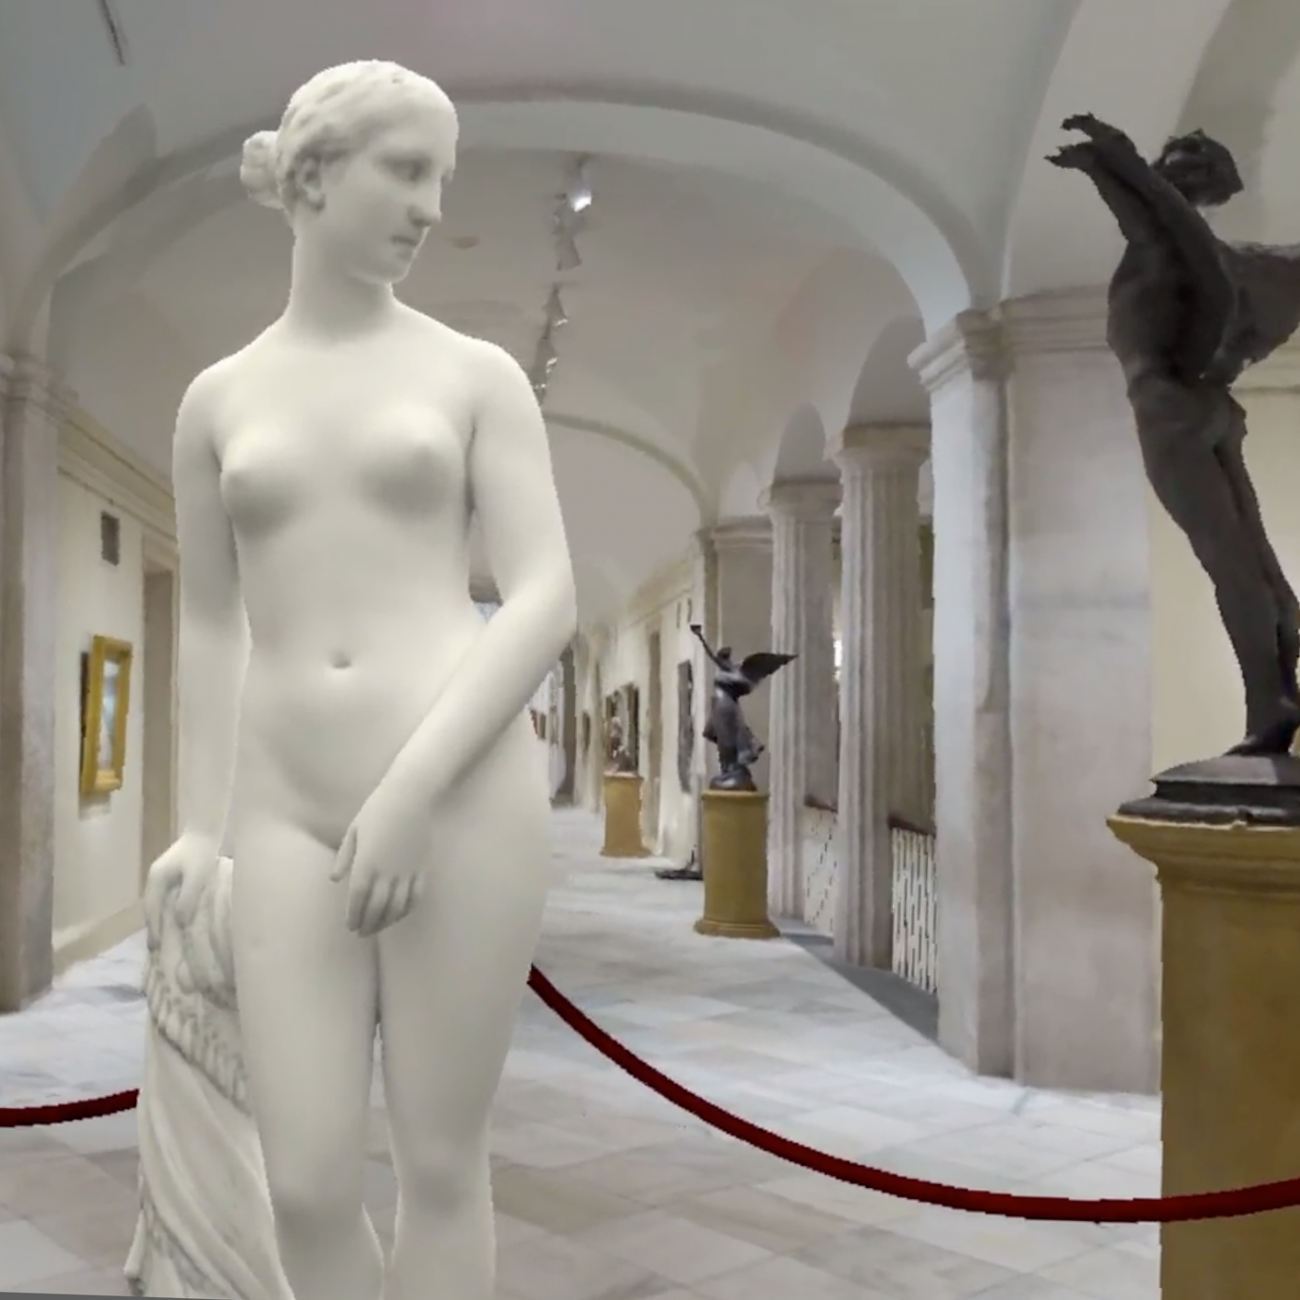 A white sculpture of a naked woman standing.